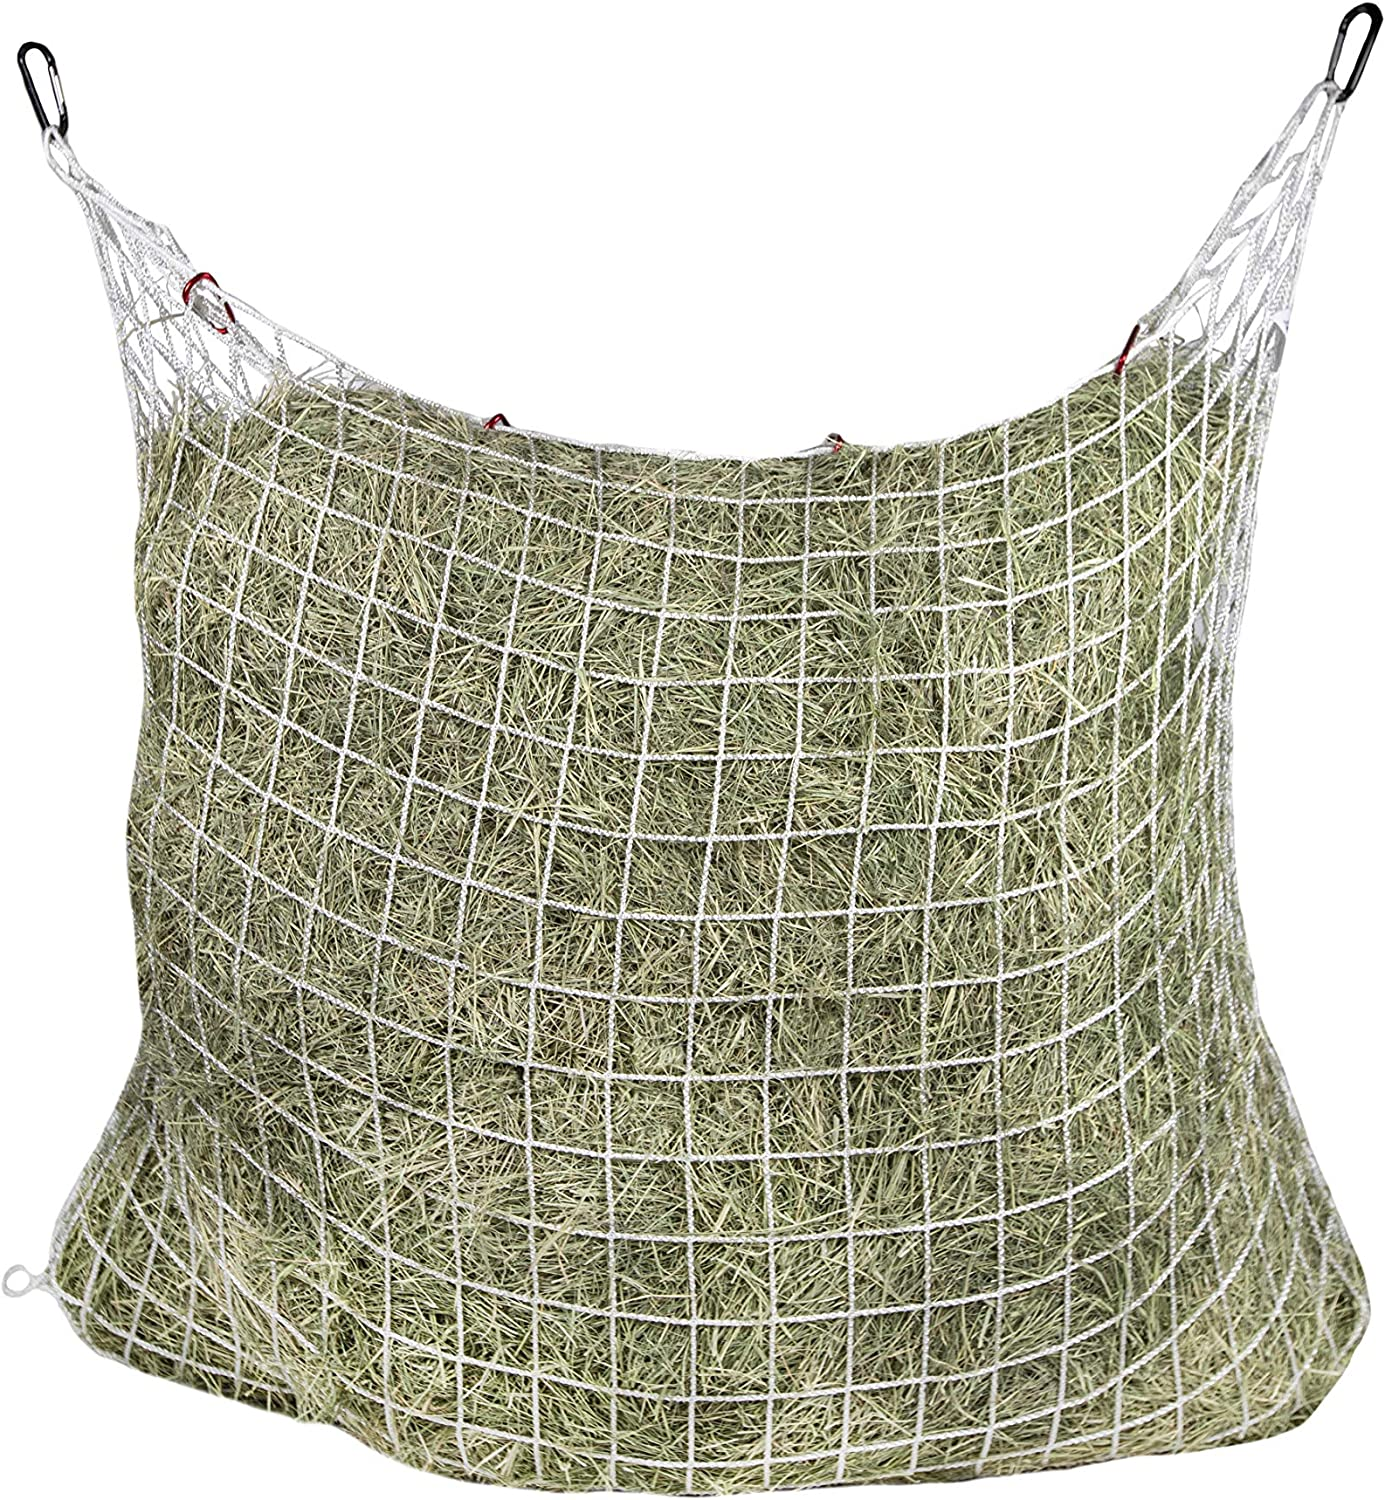 Freedom Feeder Extended Day Direct sale of manufacturer Hay Feed Over item handling Net Slow